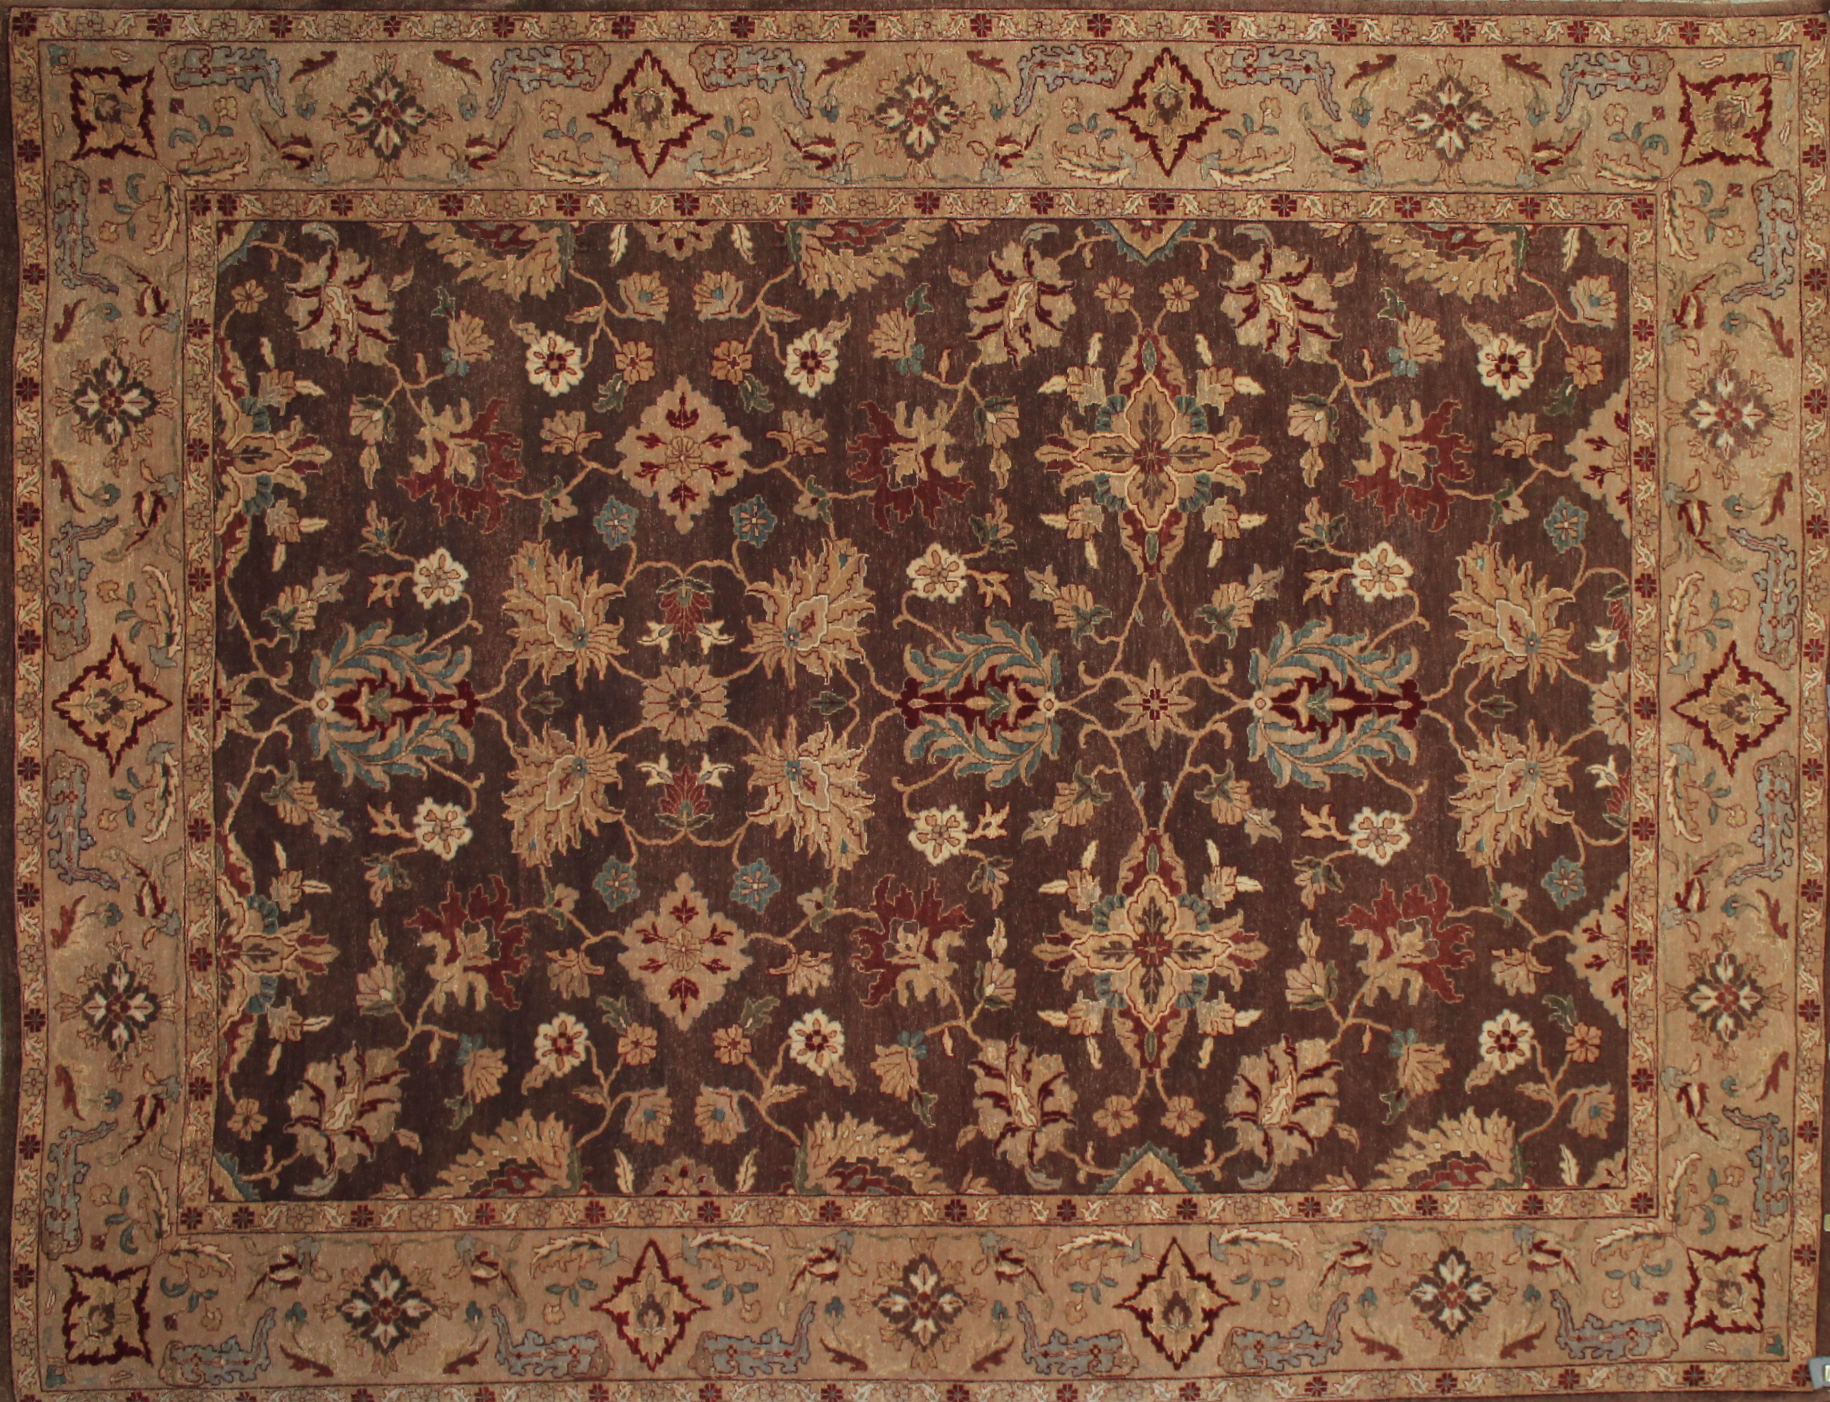 9x12 Traditional Hand Knotted Wool Area Rug - MR9609